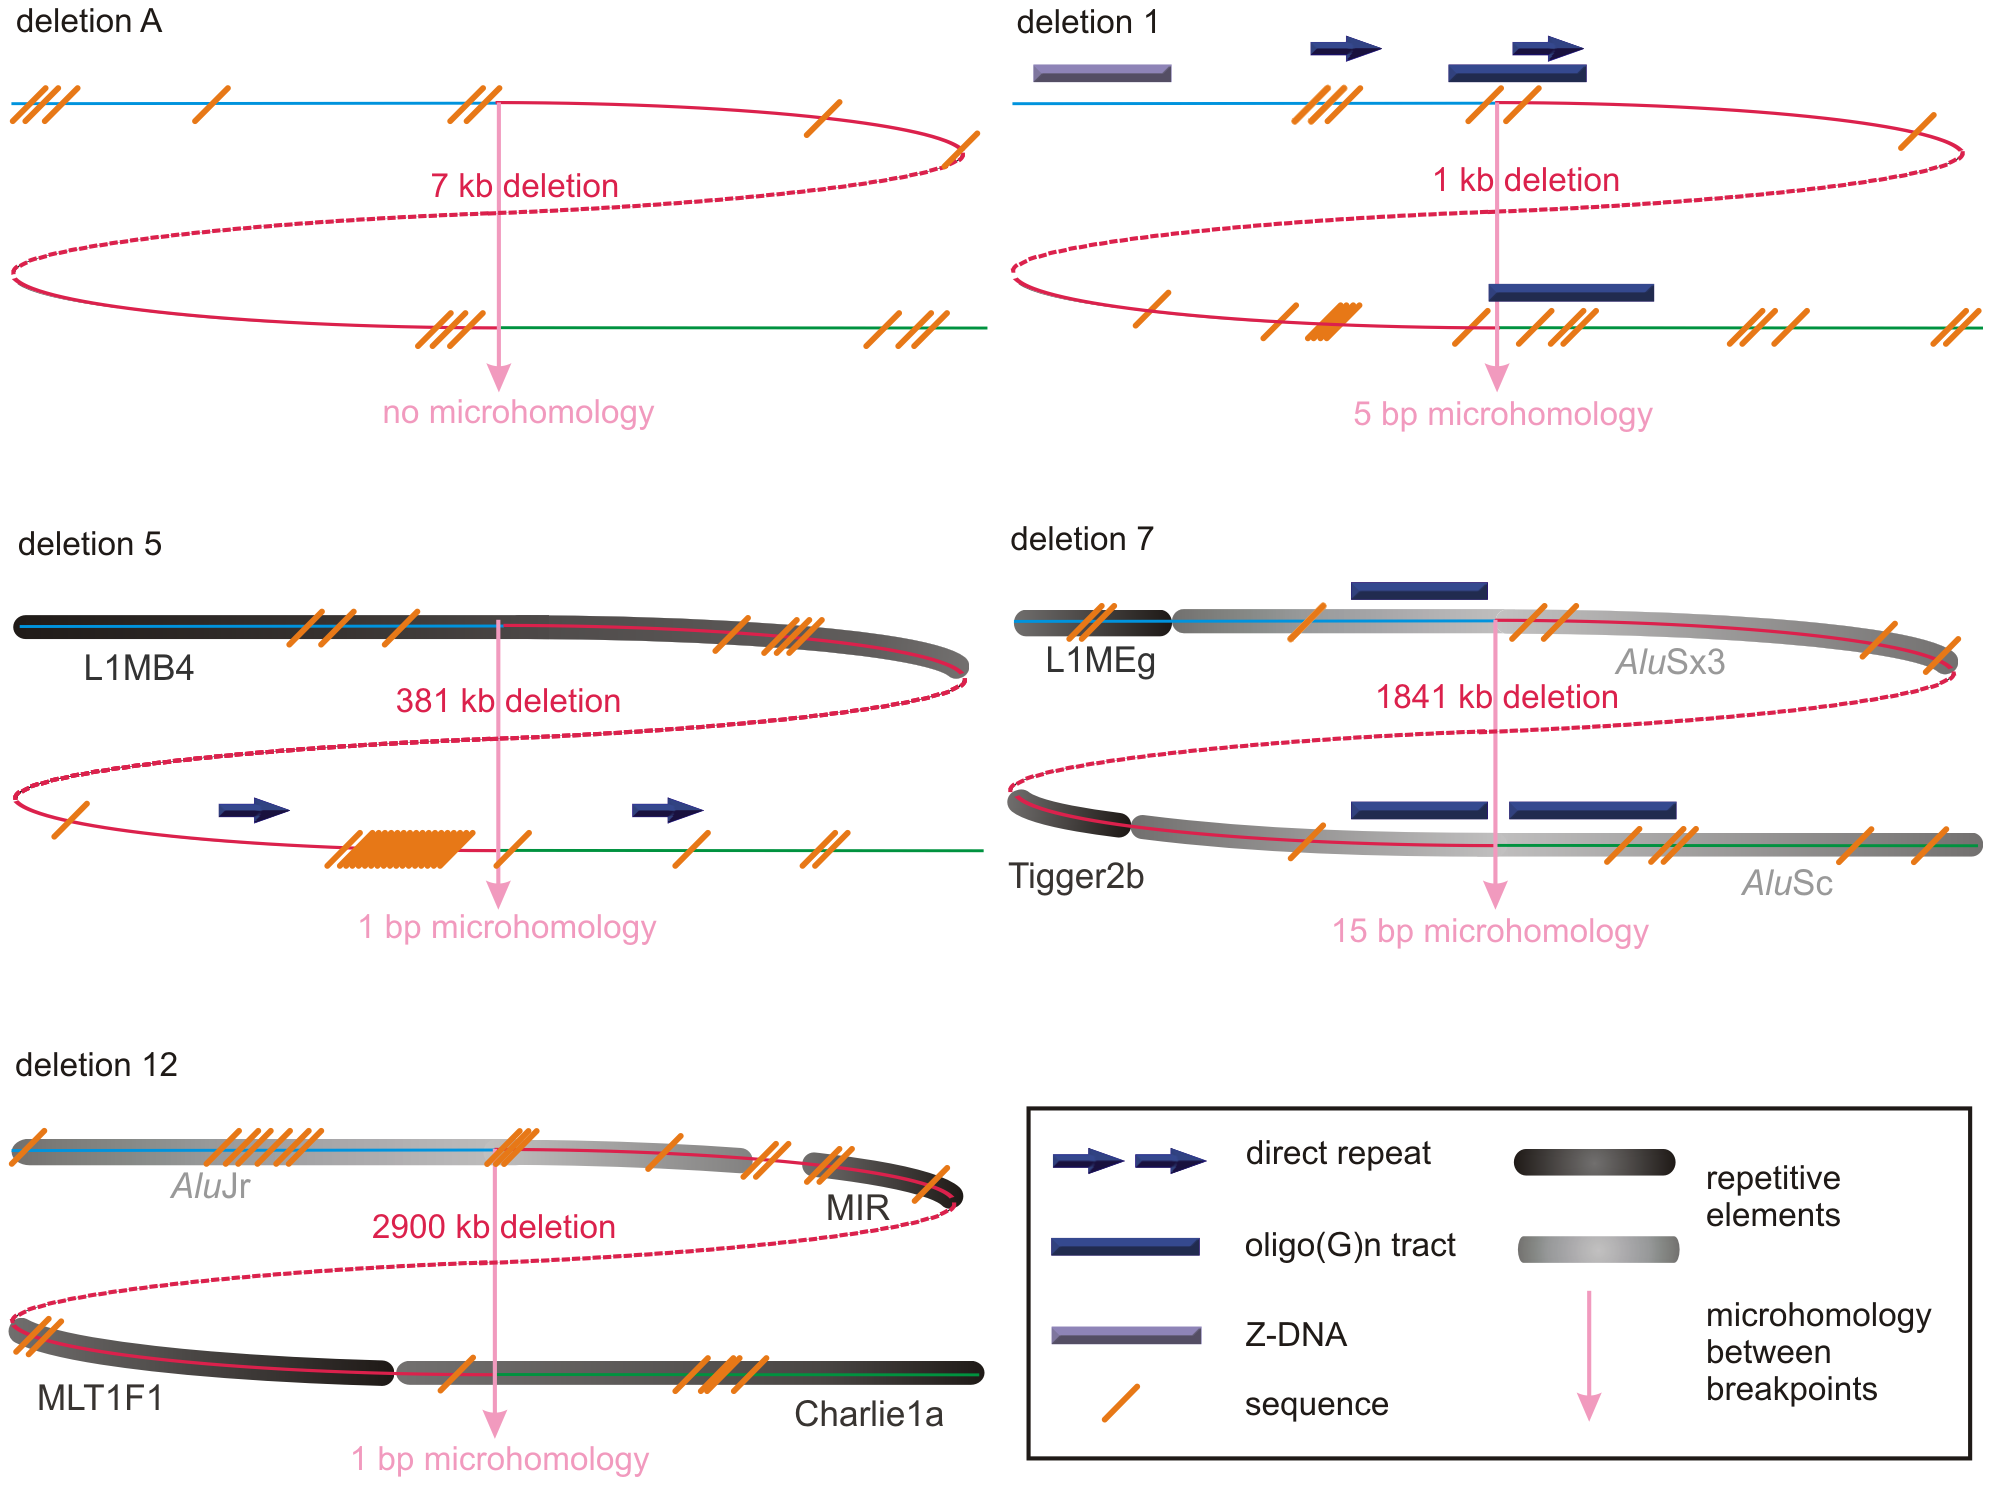 Schematic representations of the genomic architecture for 5 exemplary regulatory and <i>FOXL2</i>-encompassing deletion.